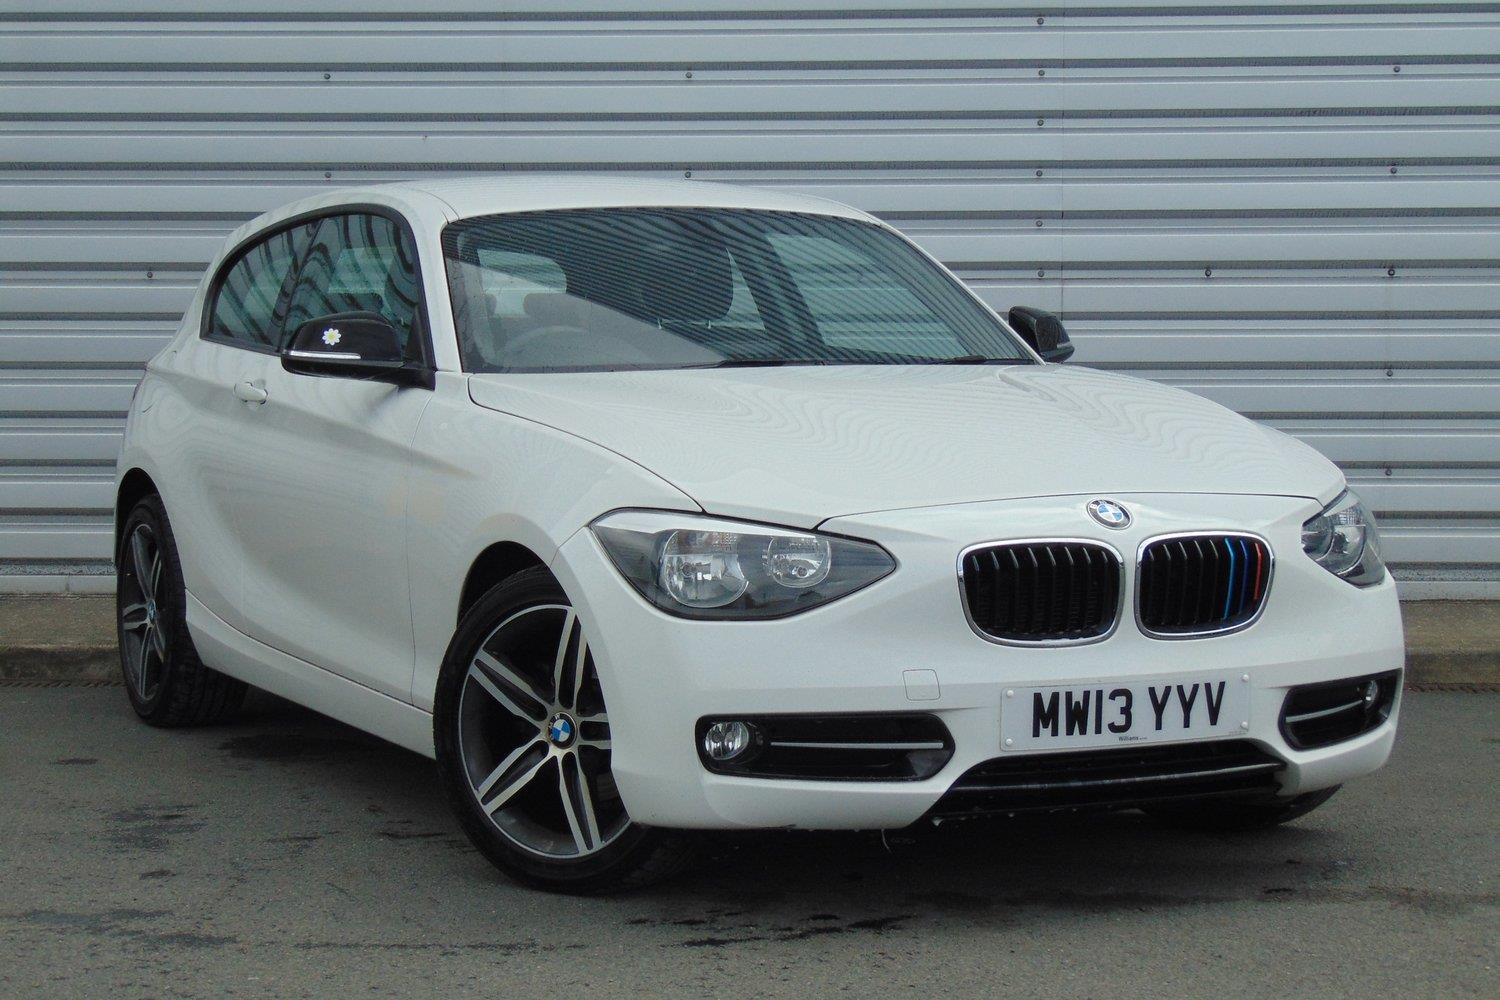 BMW 1 Series 3-door Sports Hatch MW13YYV - Image 5